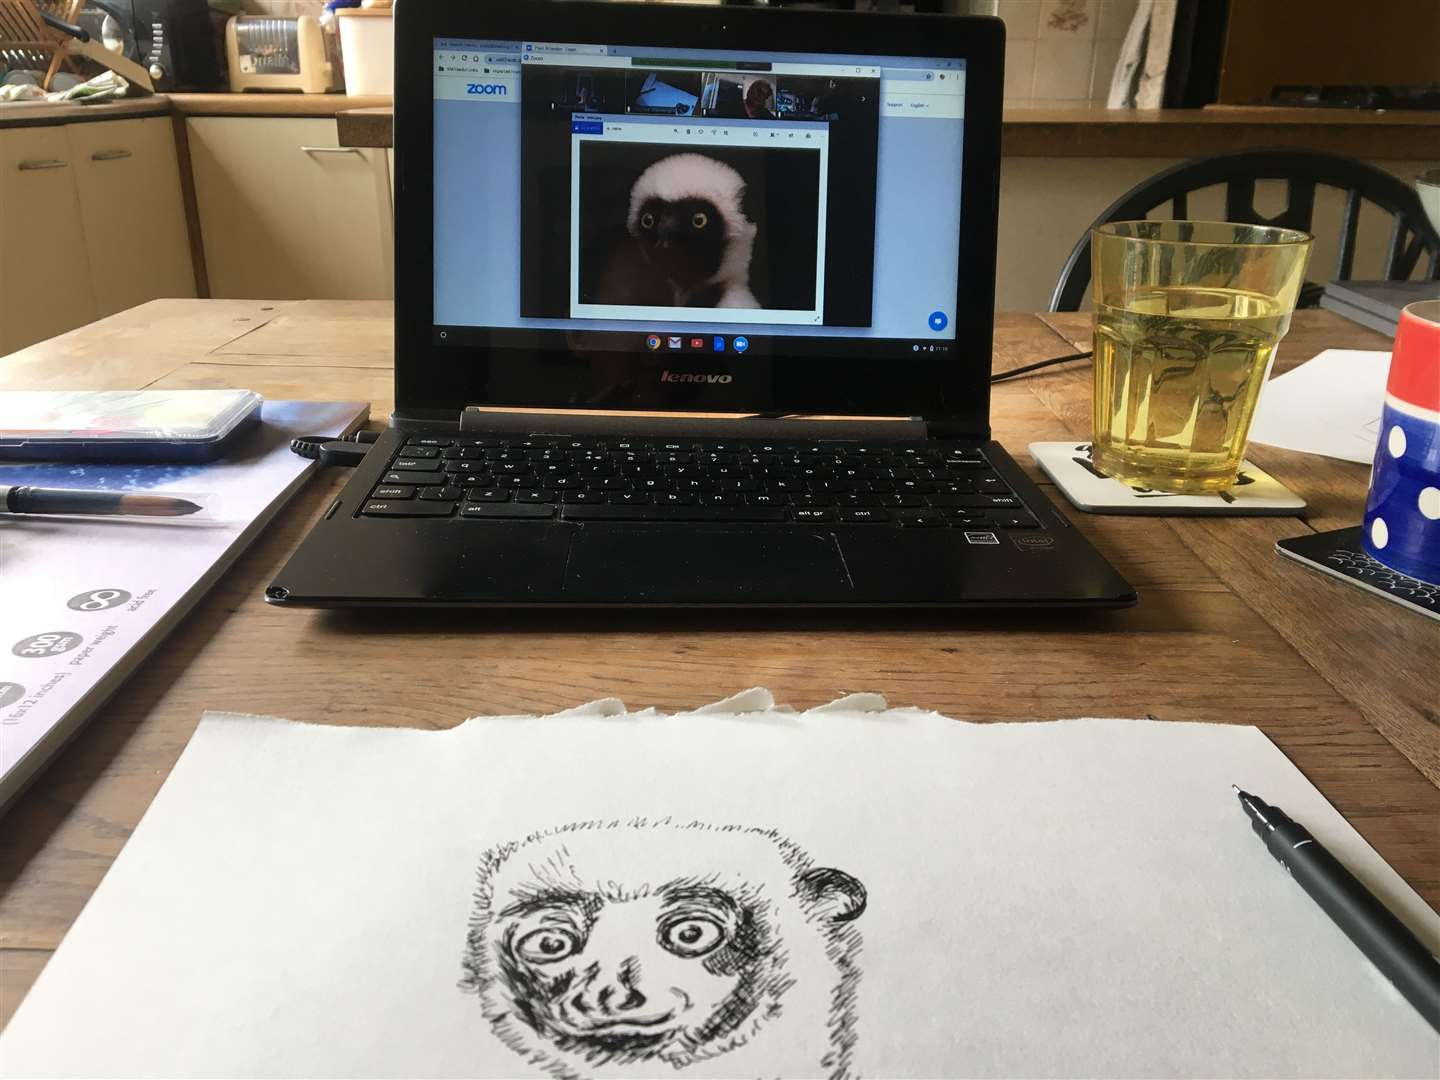 The lemur - how does it look?